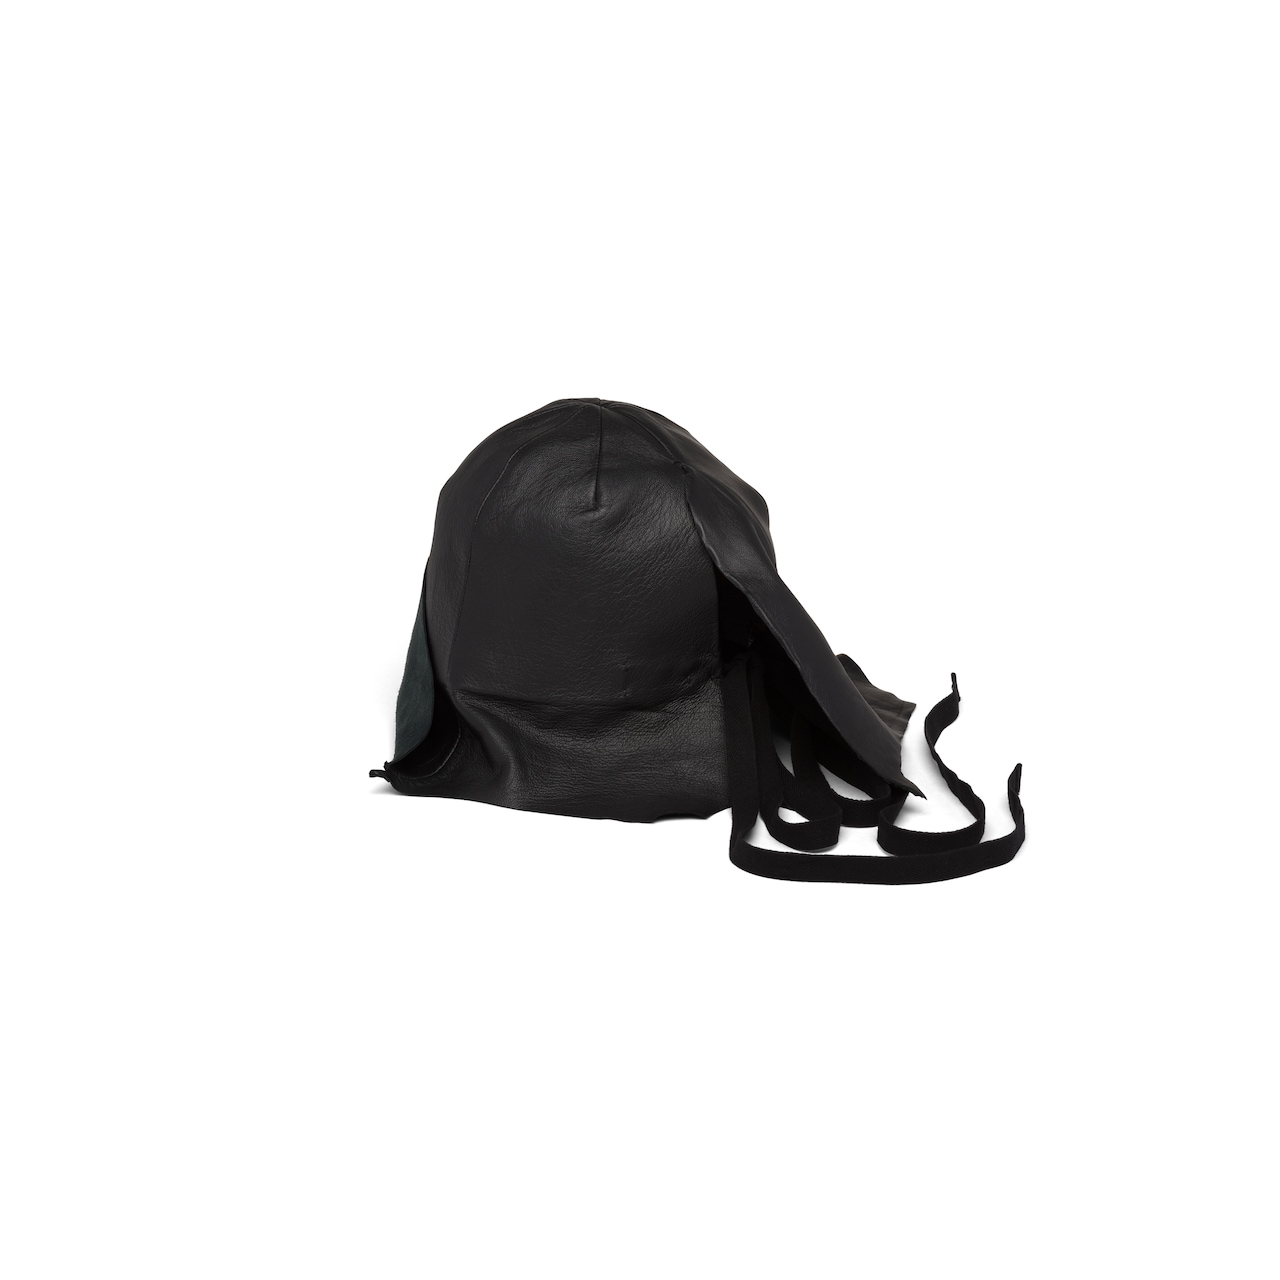 Prada Unlined nappa leather hat 3